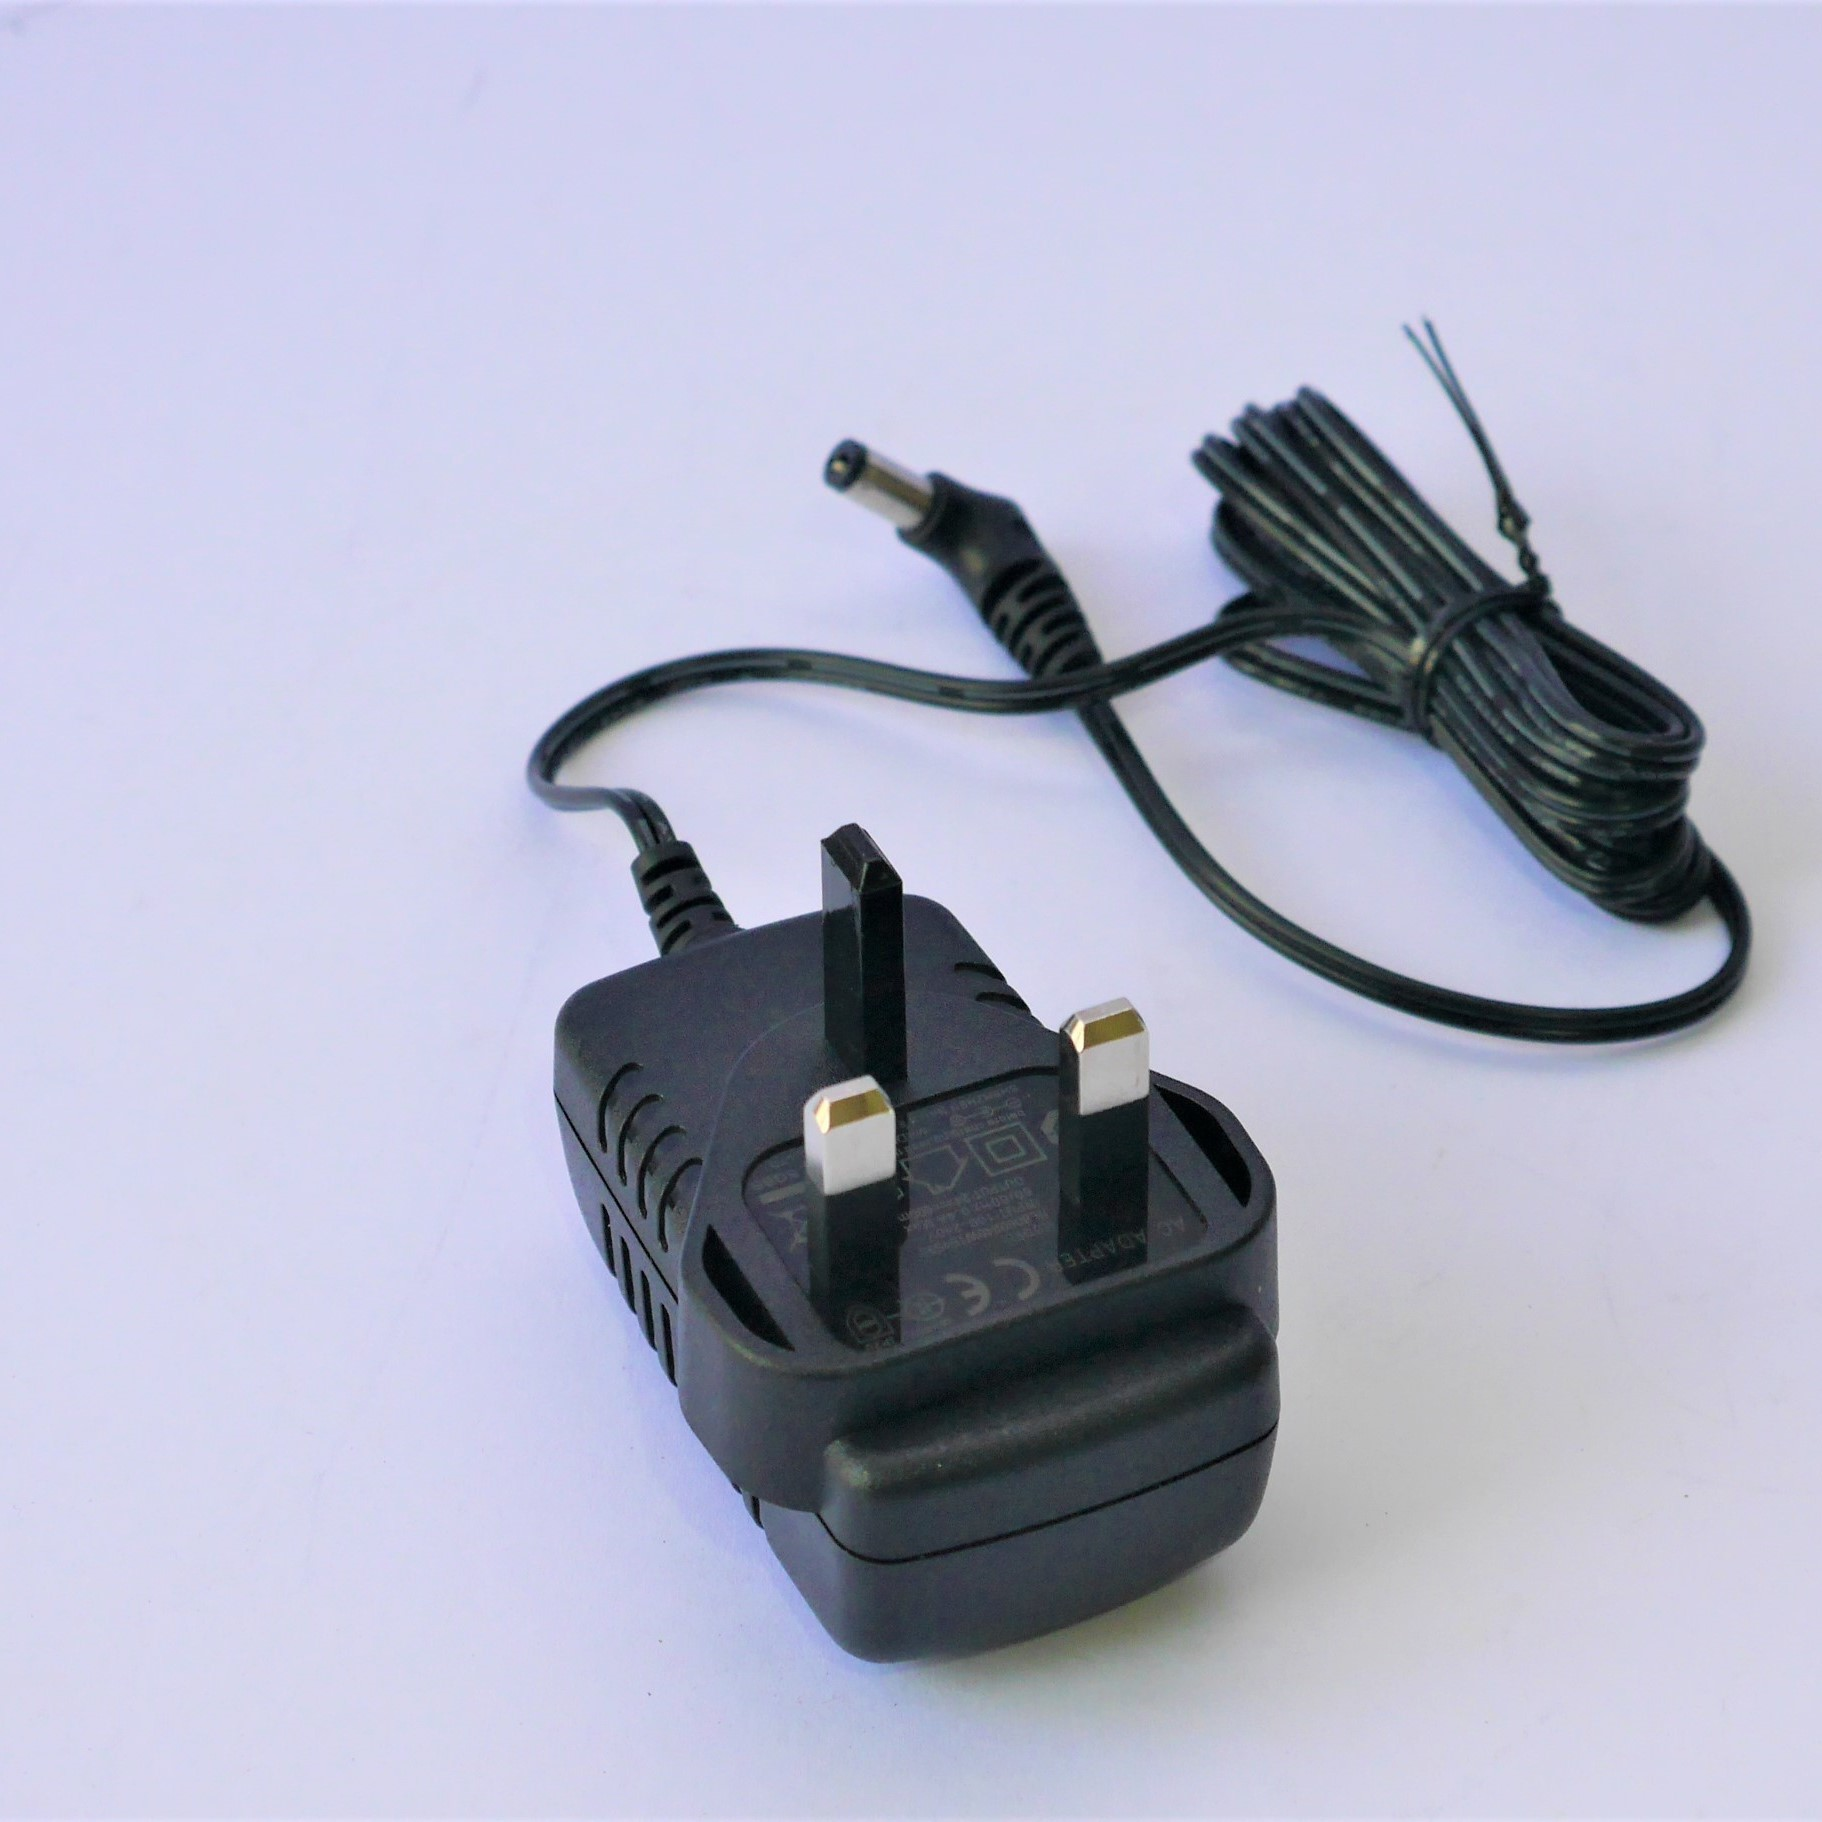 Z8 Charger.jpg